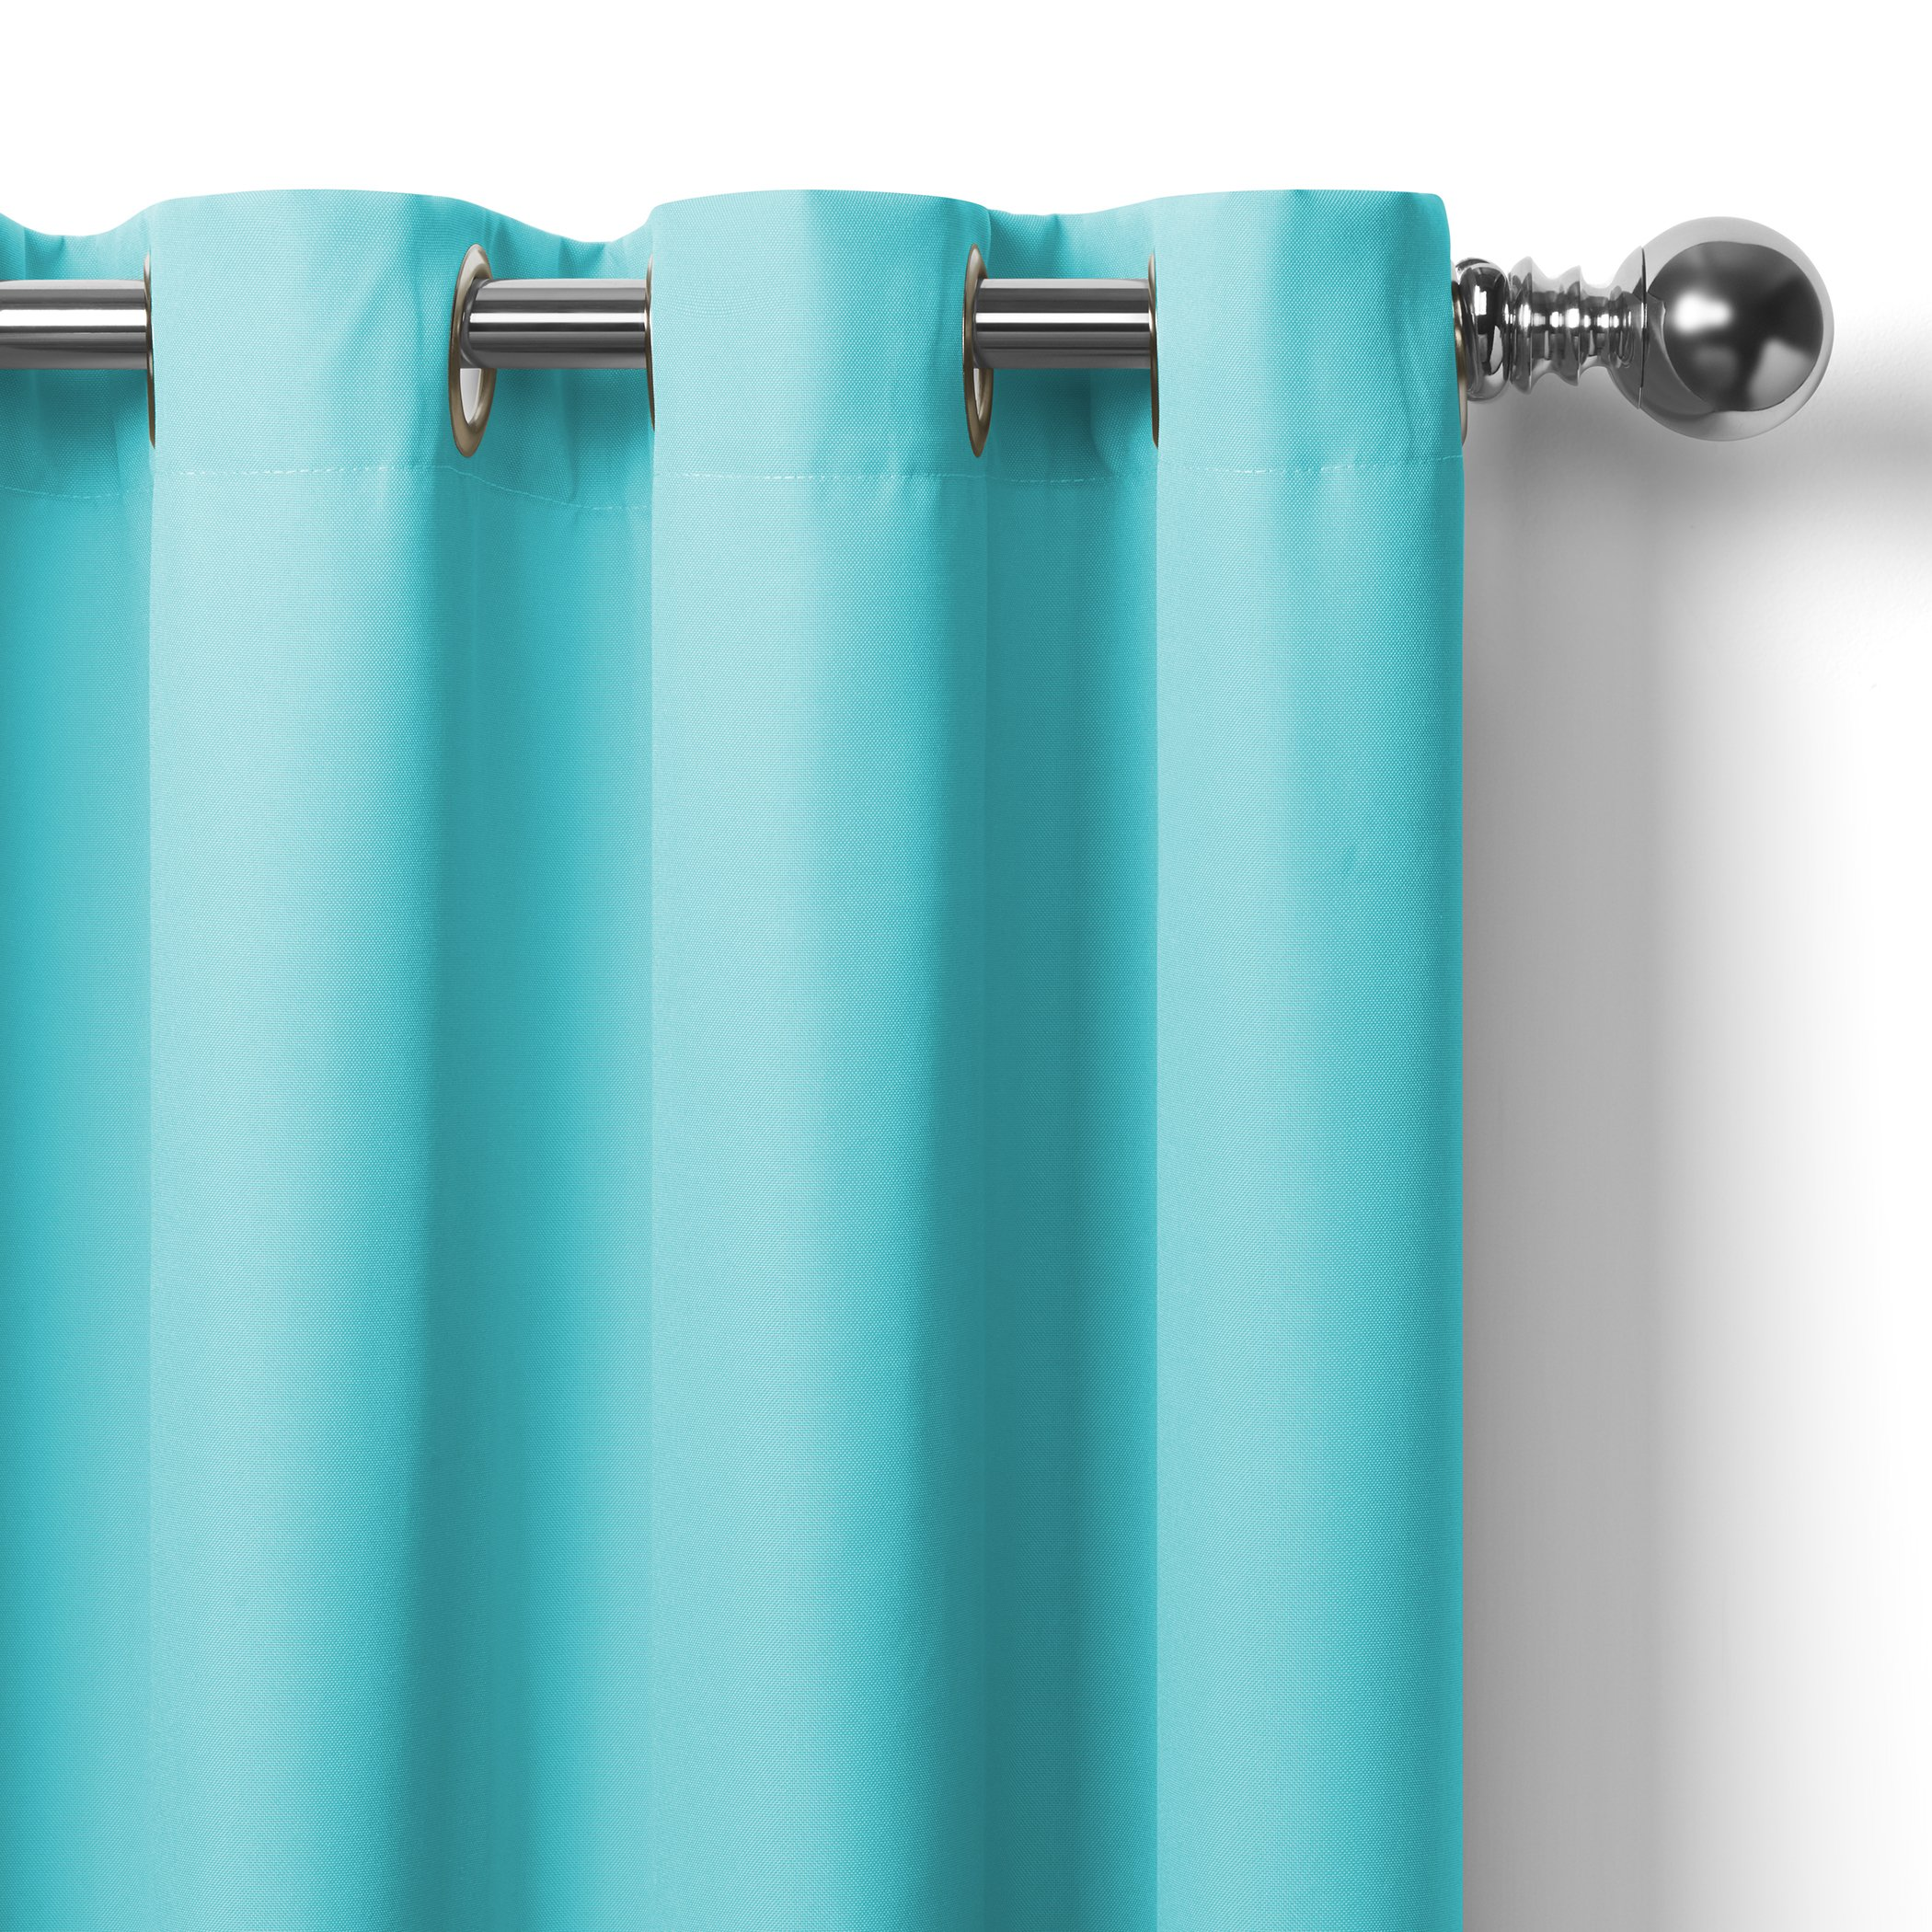 Elrene Home Fashions Connor Indoor/Outdoor Solid Grommet Panel Window Curtain 52'' x 108'' (1), Turquoise by Elrene (Image #6)